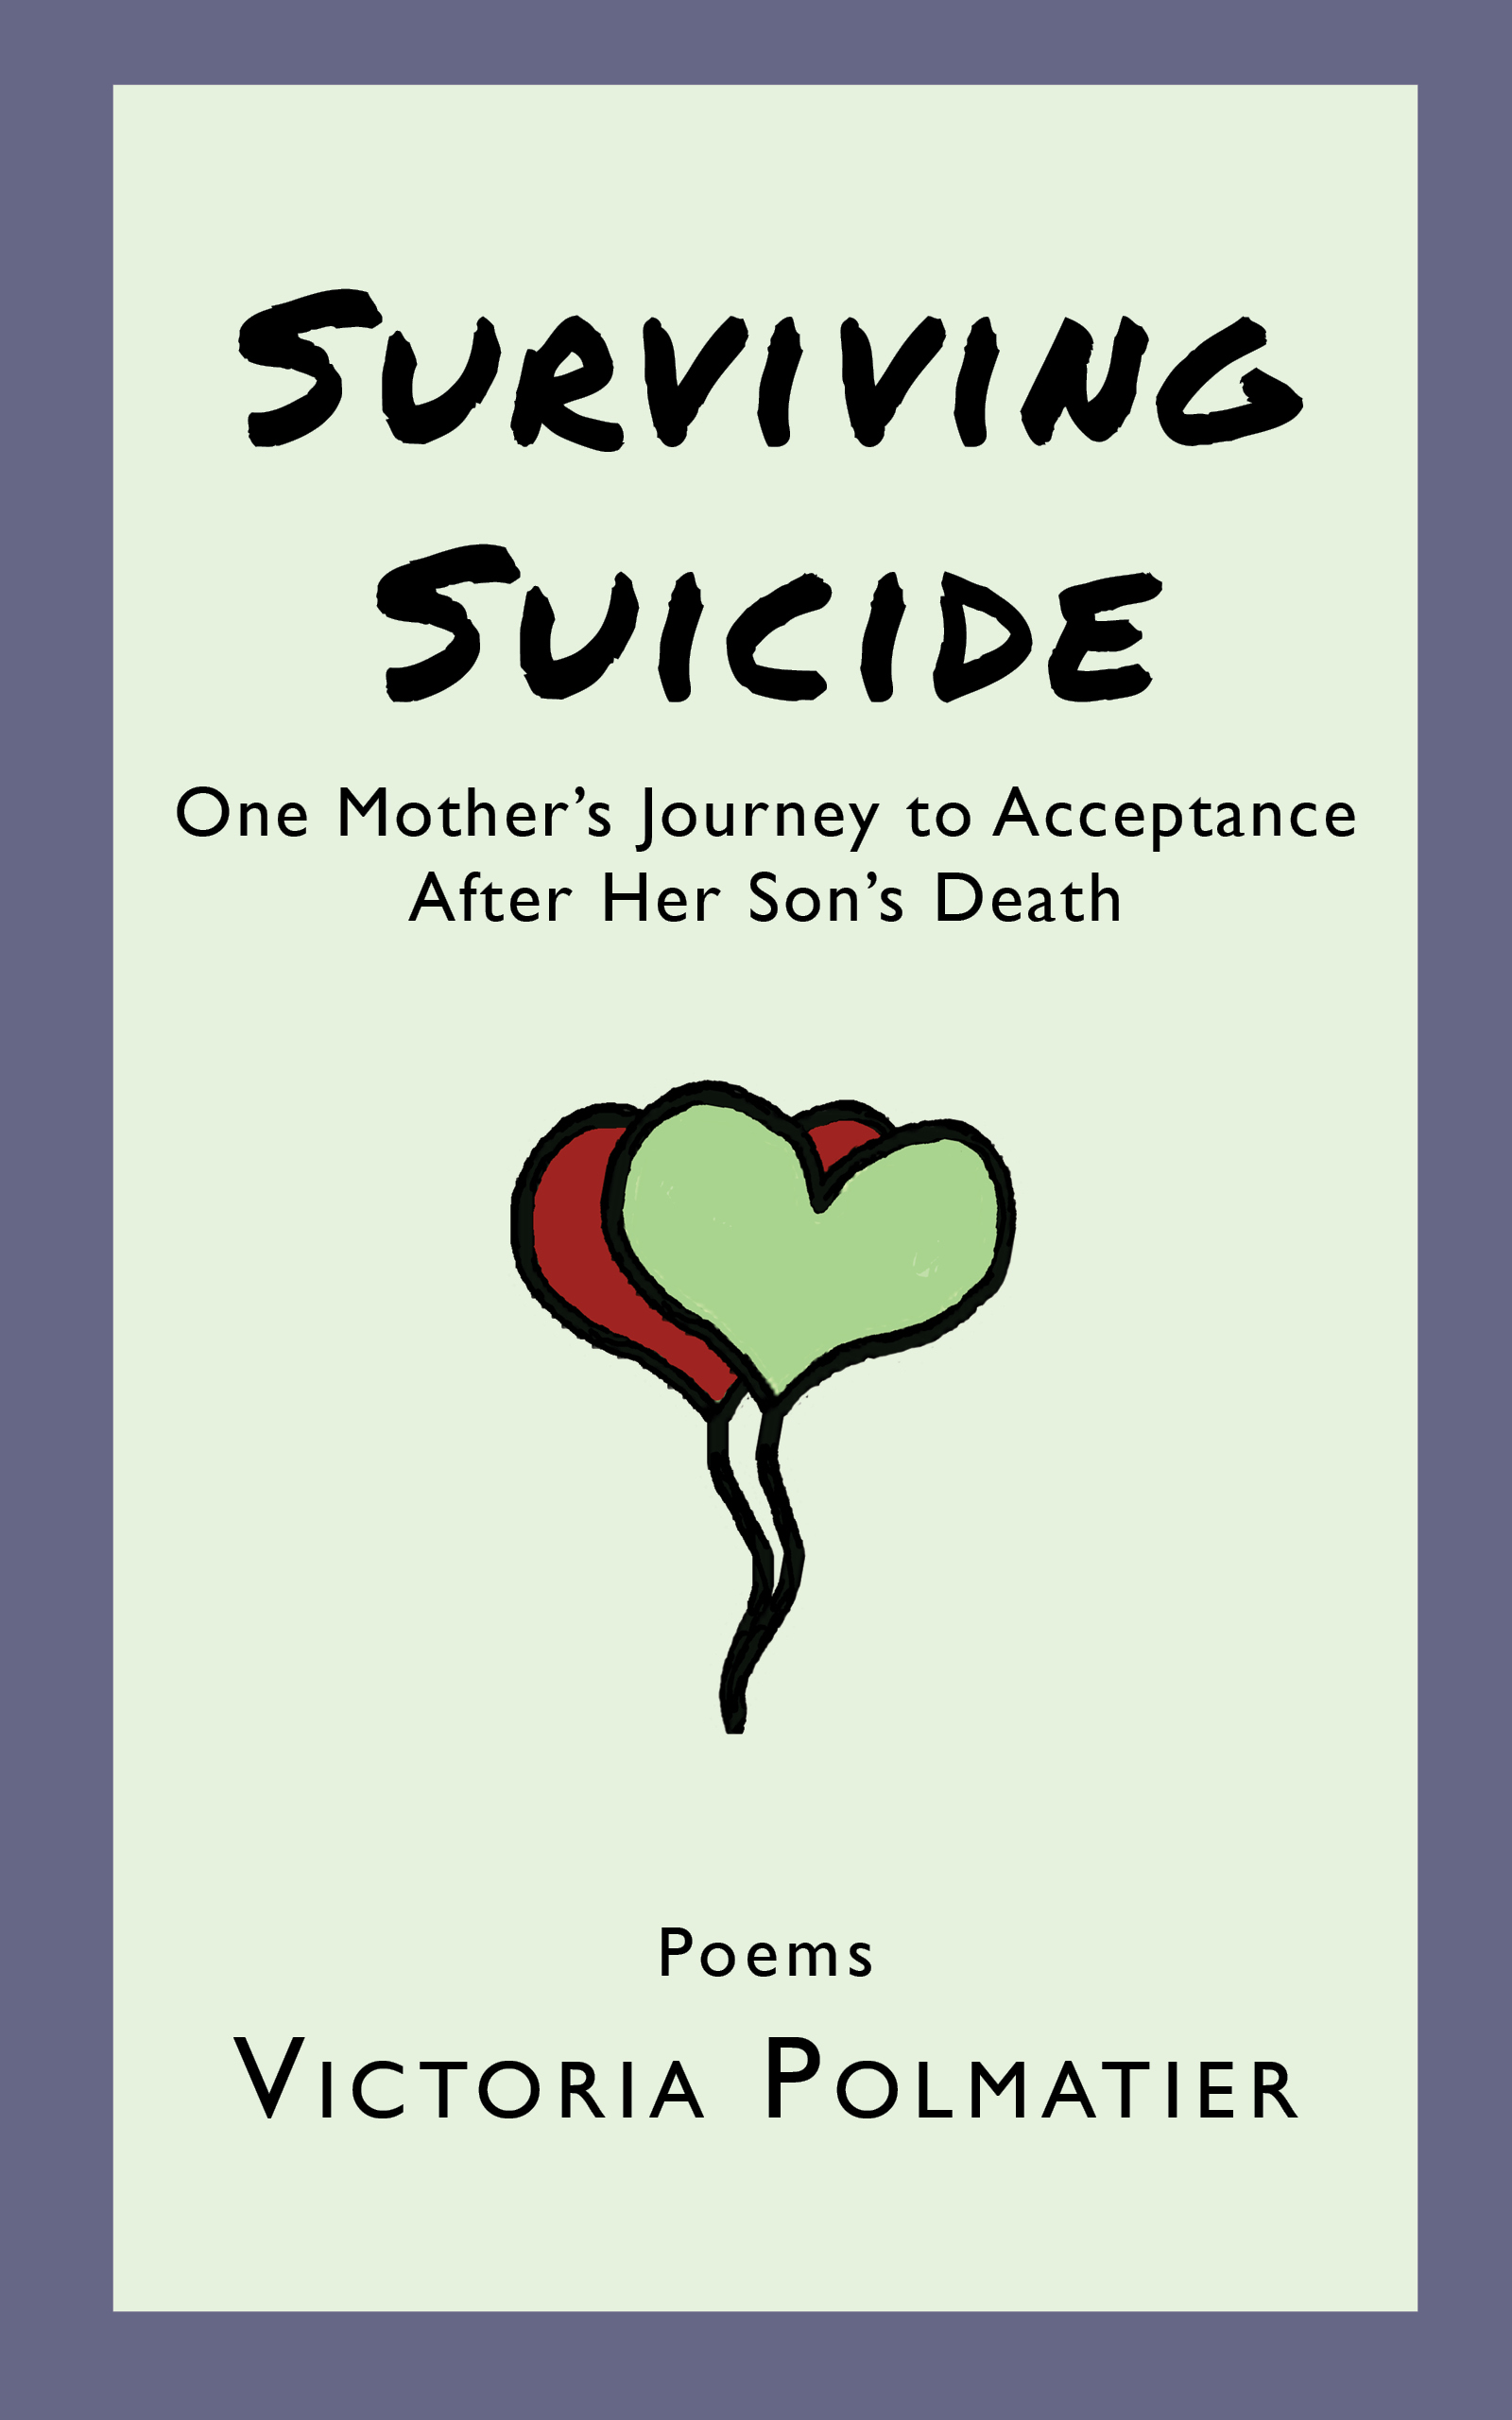 Surviving Suicide, One Mother's Journey to Acceptance After Her Son's Death